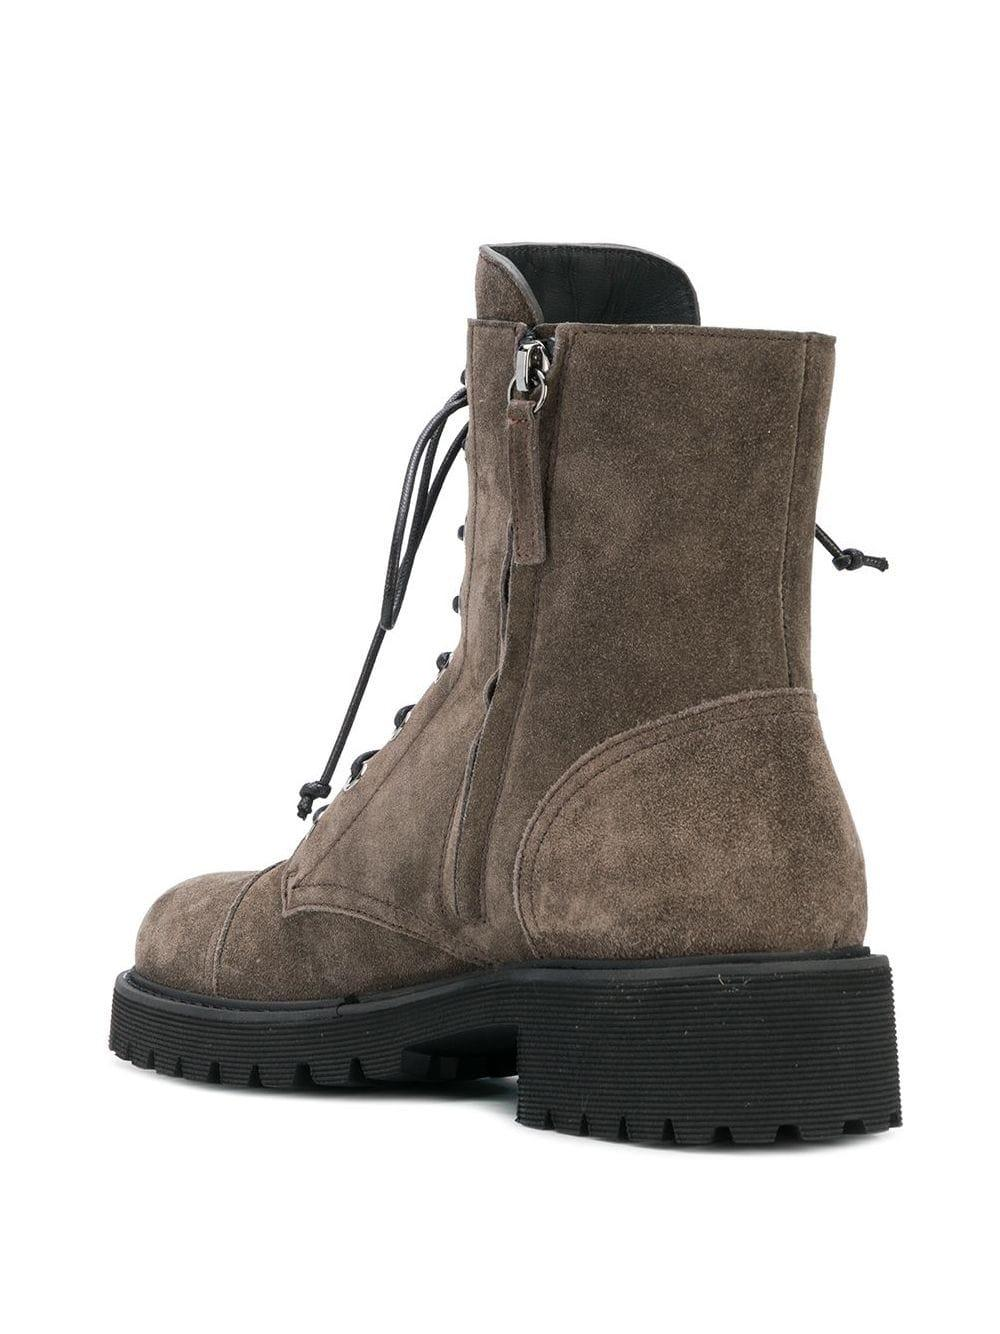 Giuseppe Zanotti Suede Lace-up Boots in Brown